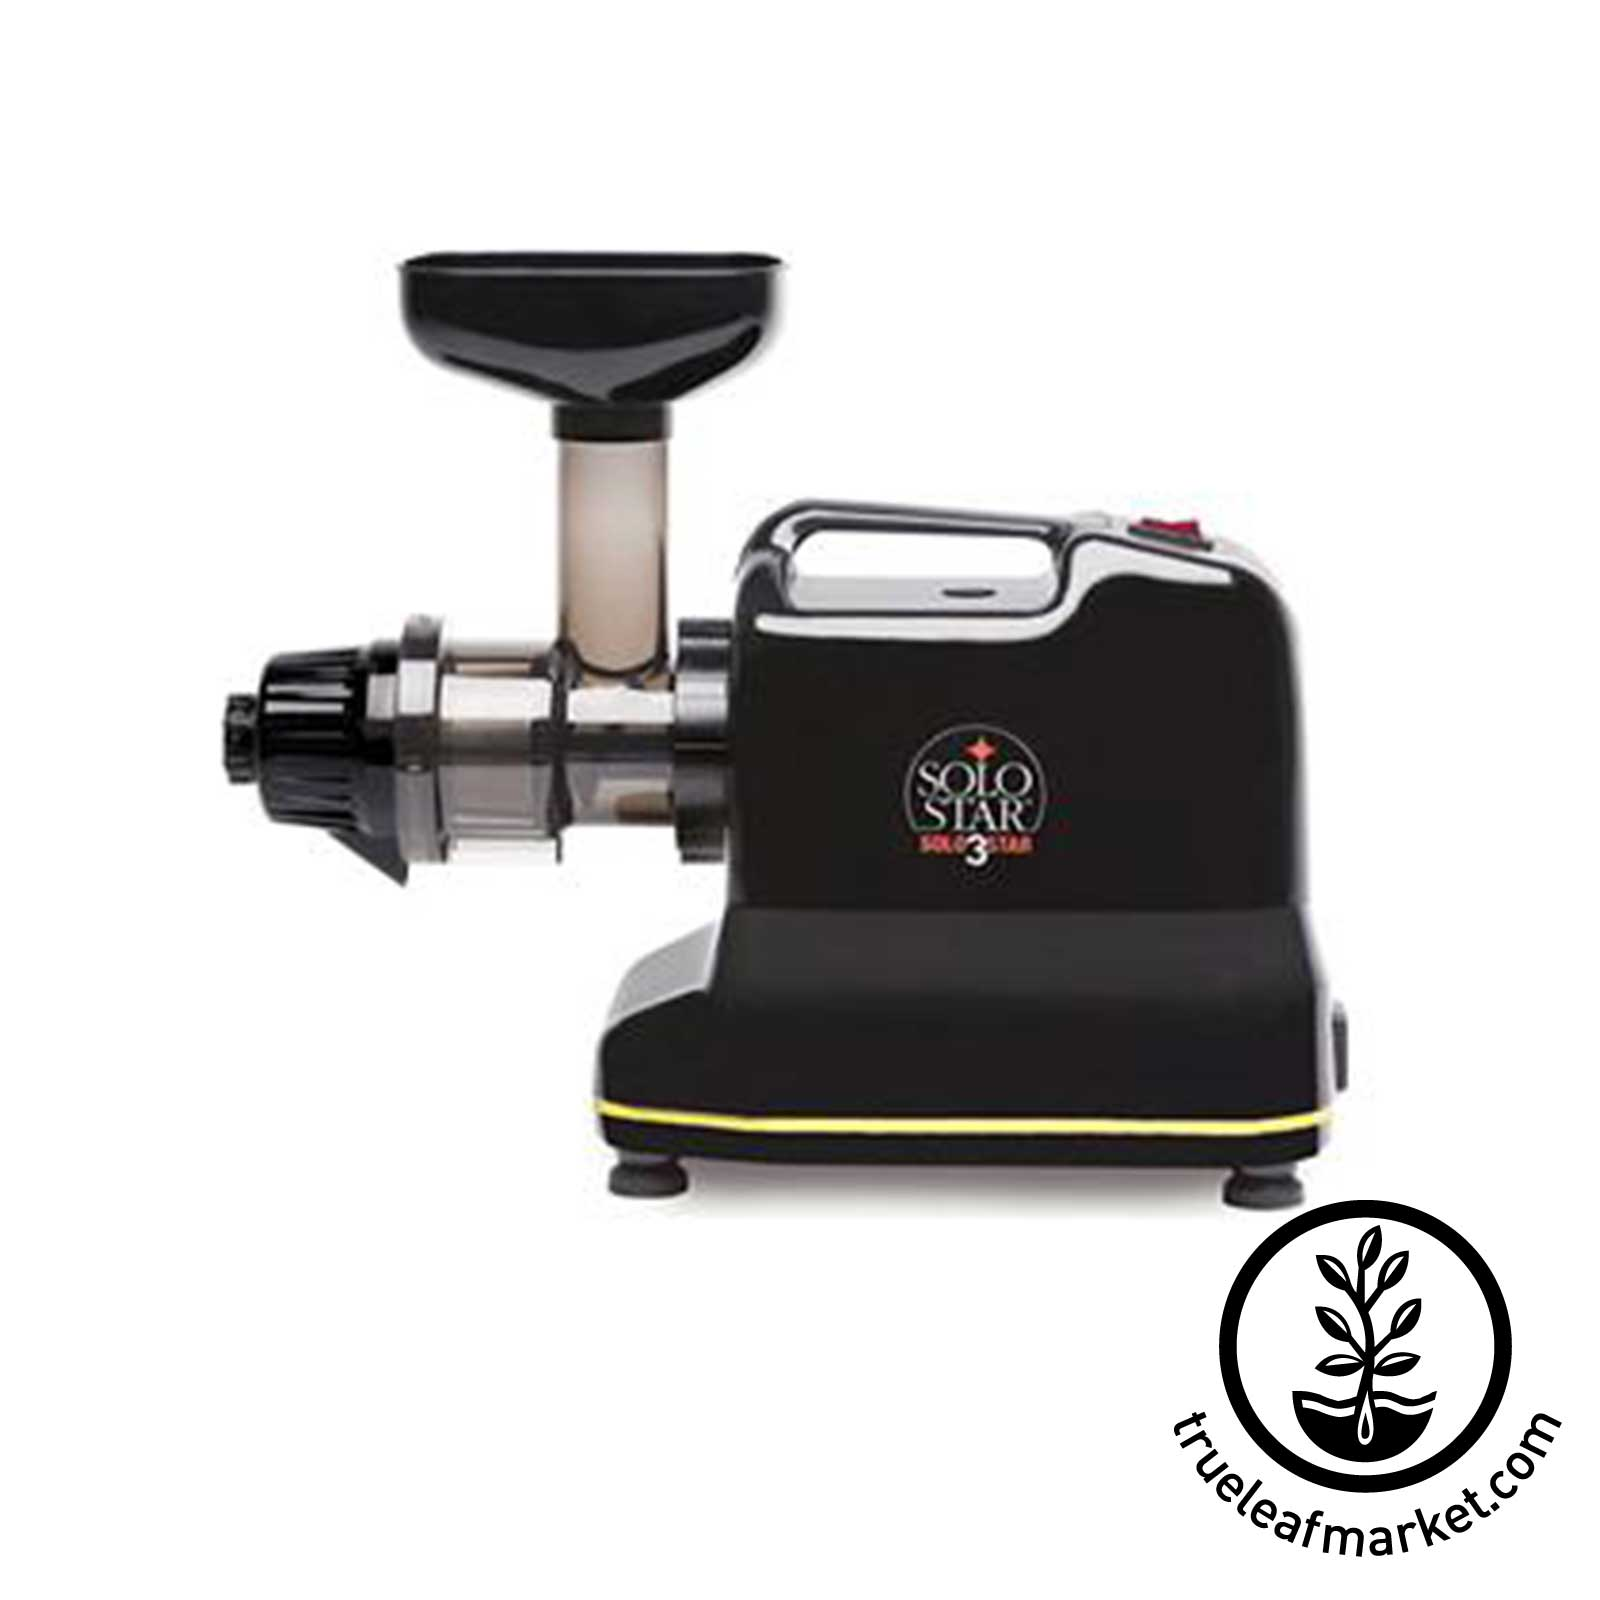 SoloStar 3 Slow Masticating Juicer